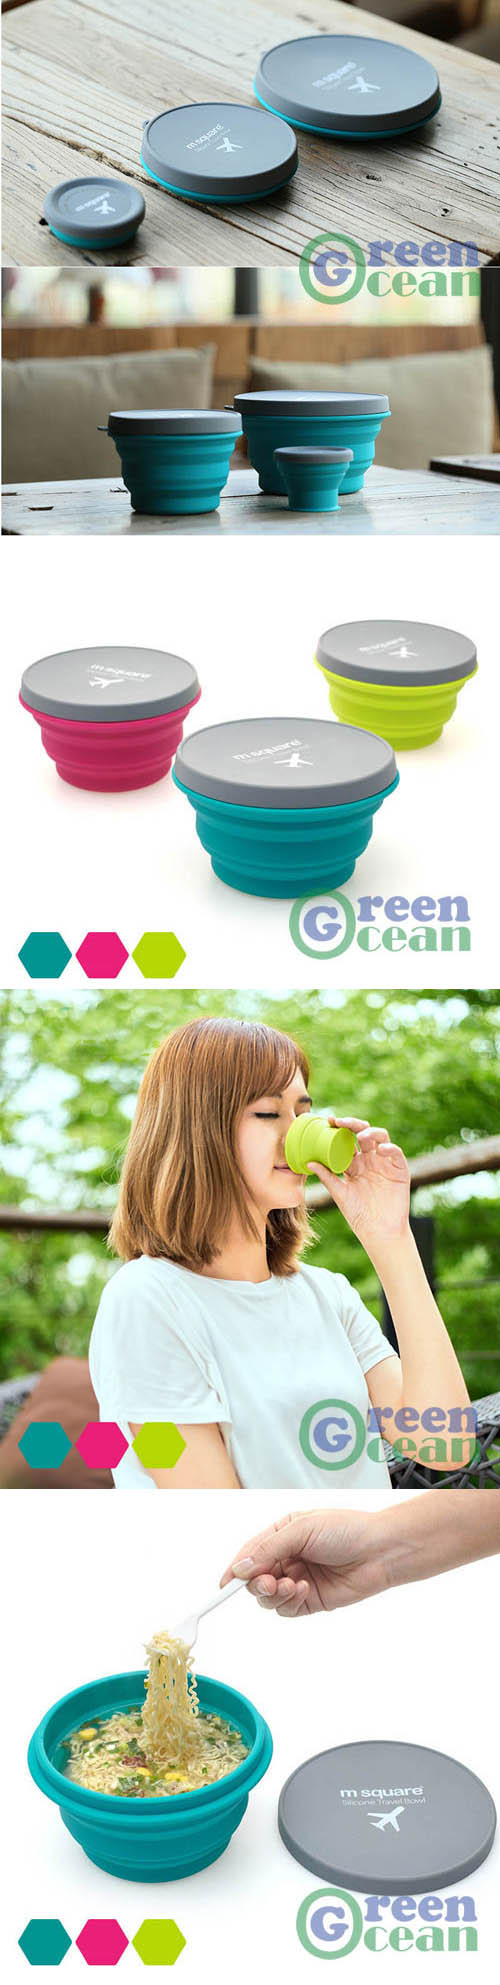 Portable convenient foldable silicone travel drinking cup and dinner bowl (S-90ml M-500ml L-1000ml)